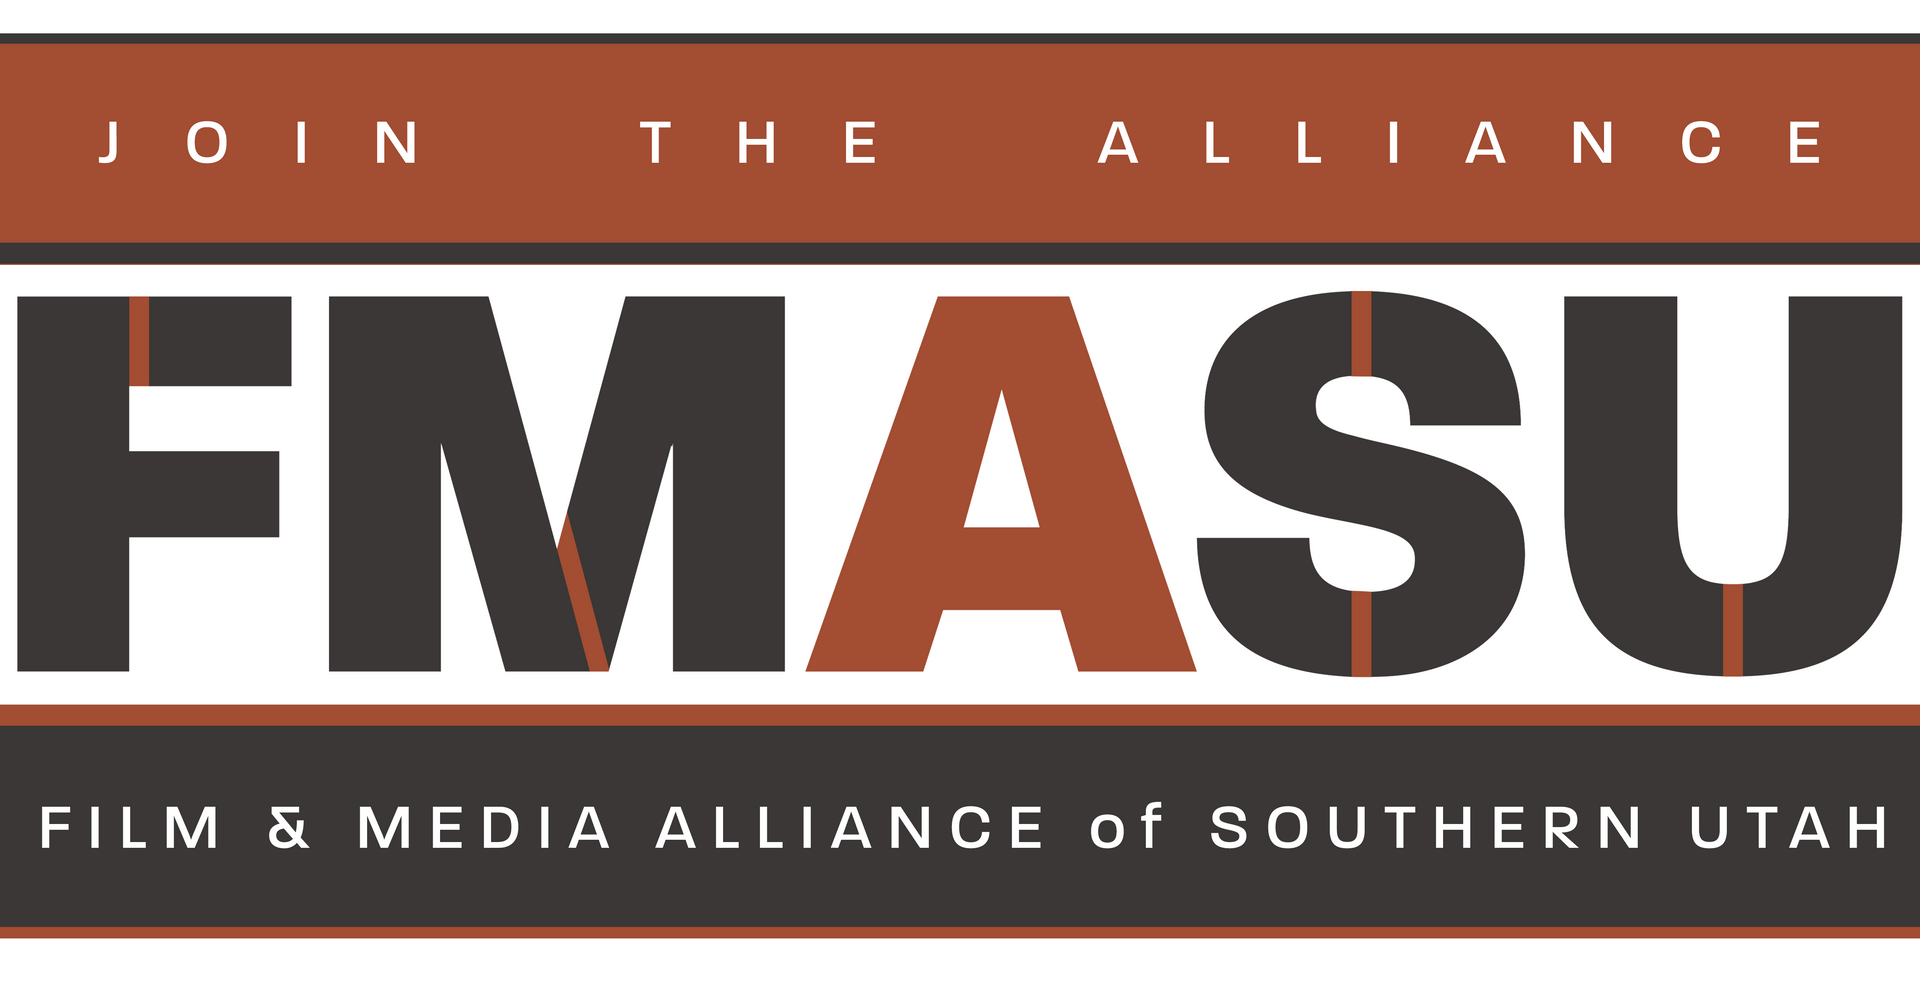 Film & Media Alliance of Southern Utah